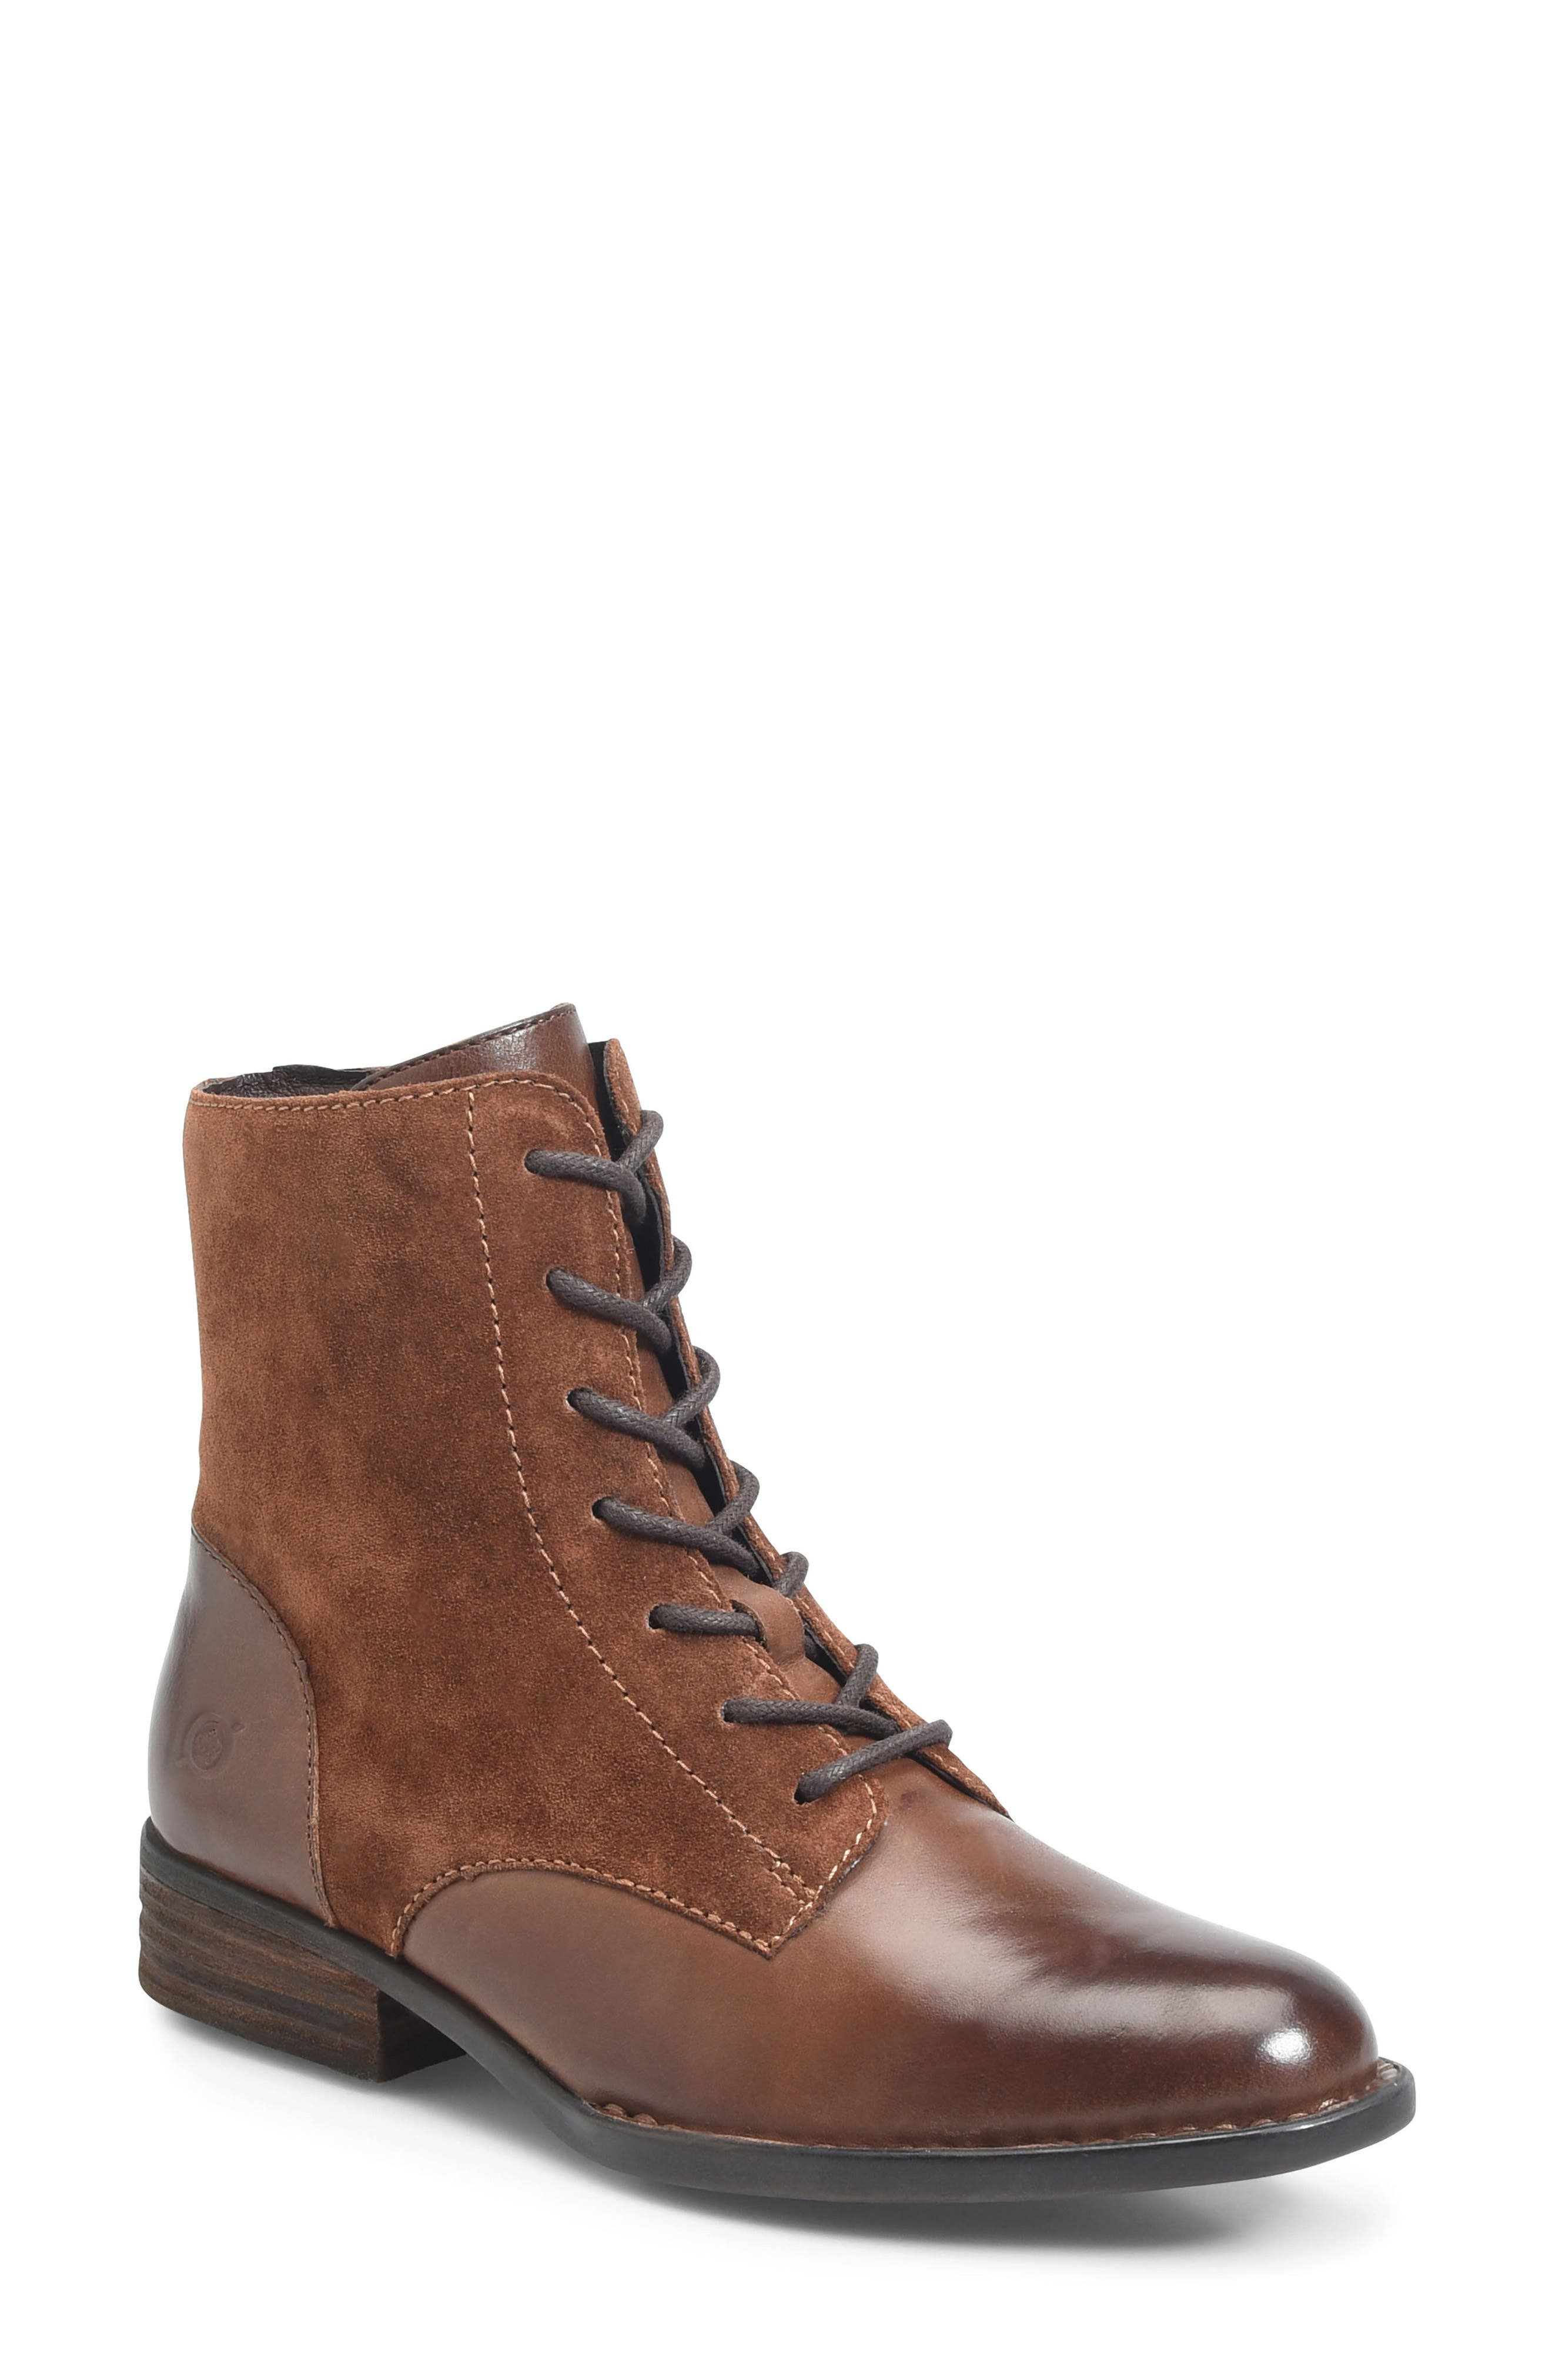 Clements Lace-Up Boot,                         Main,                         color, Brown/ Rust Combo